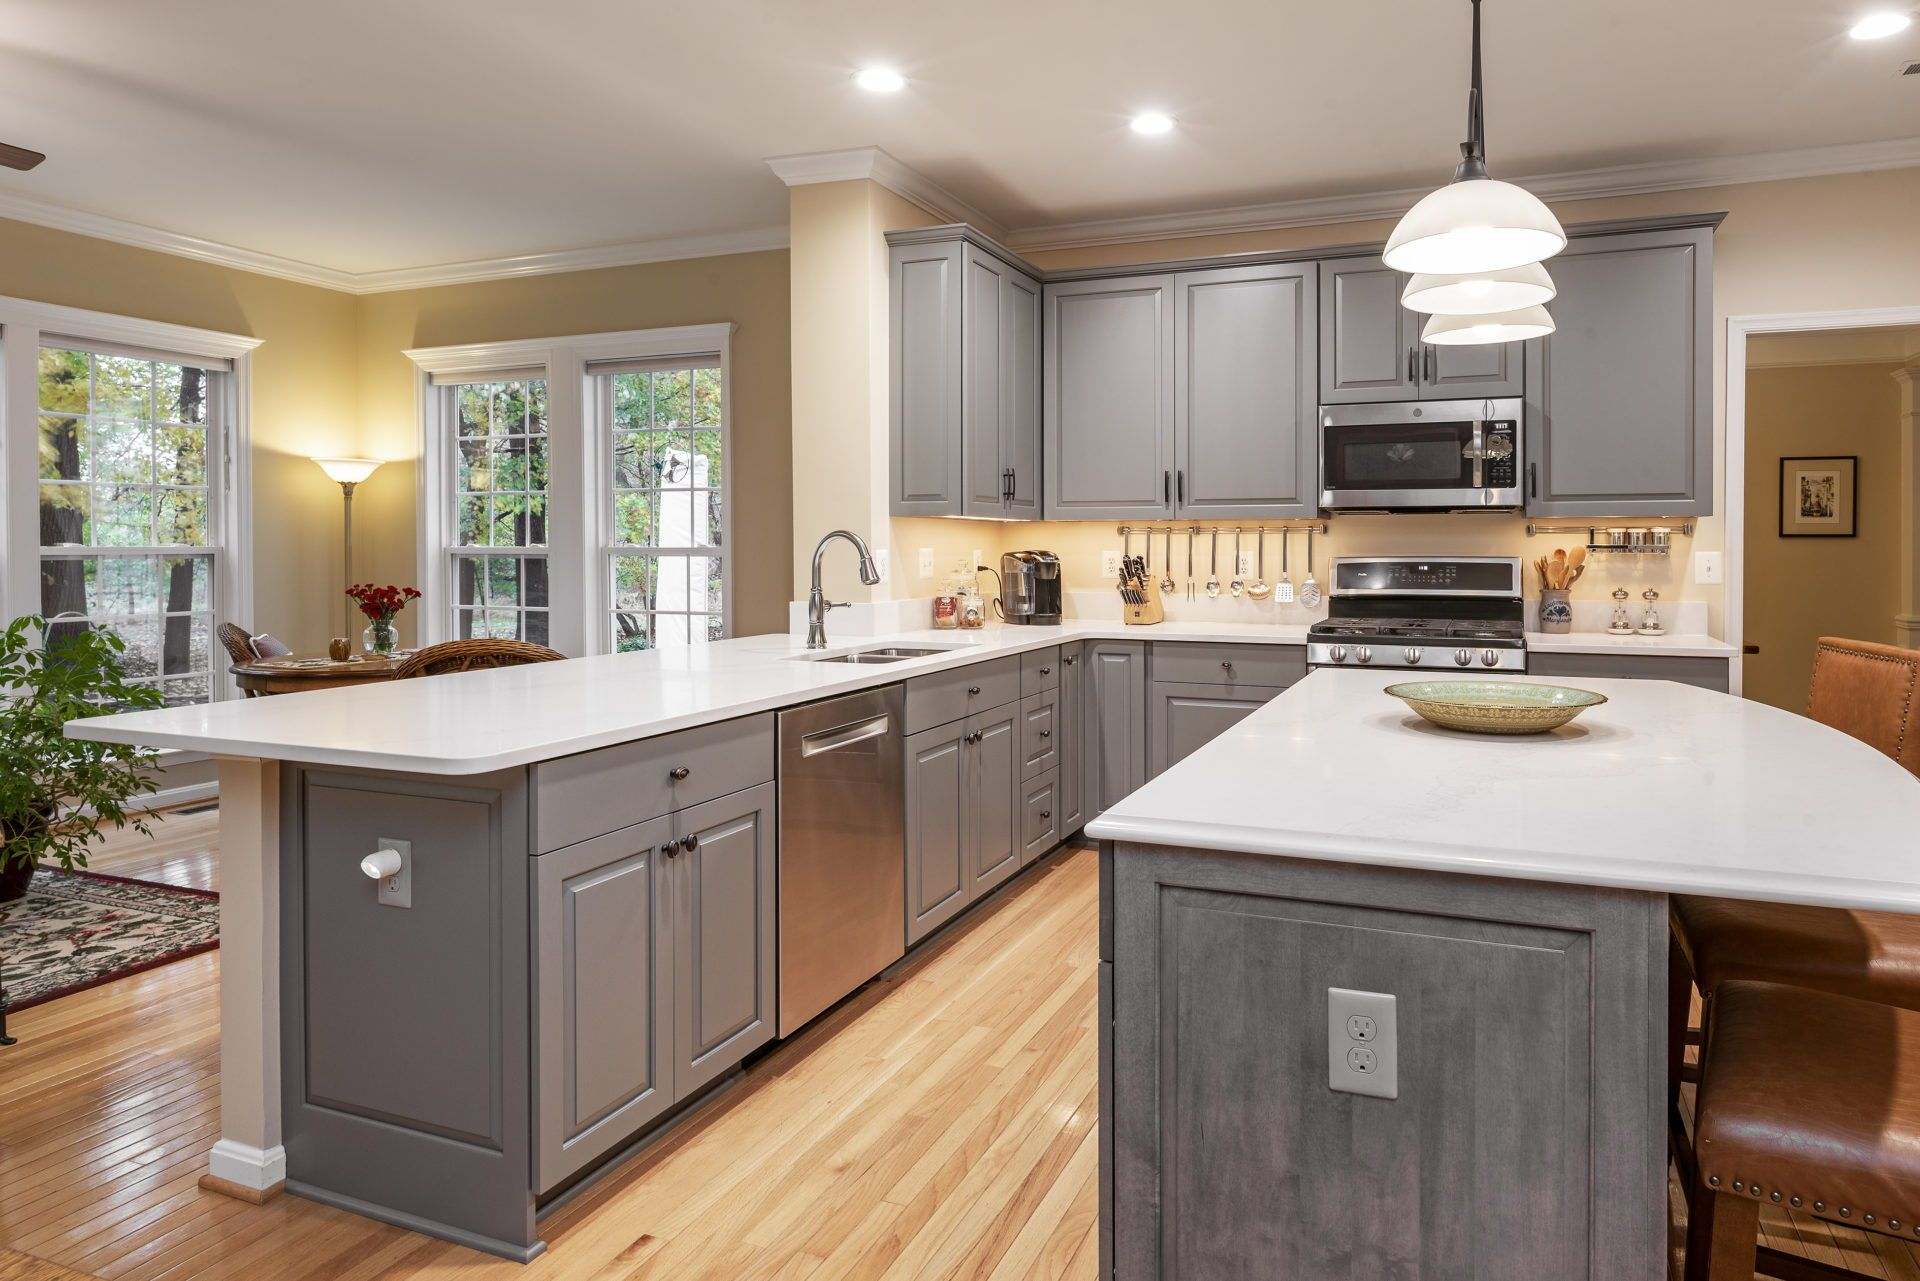 Gaithersburg Md K S Renewal Systems Llc In 2020 Cabinet Styles Kitchen Colors Grey Kitchen Cabinets